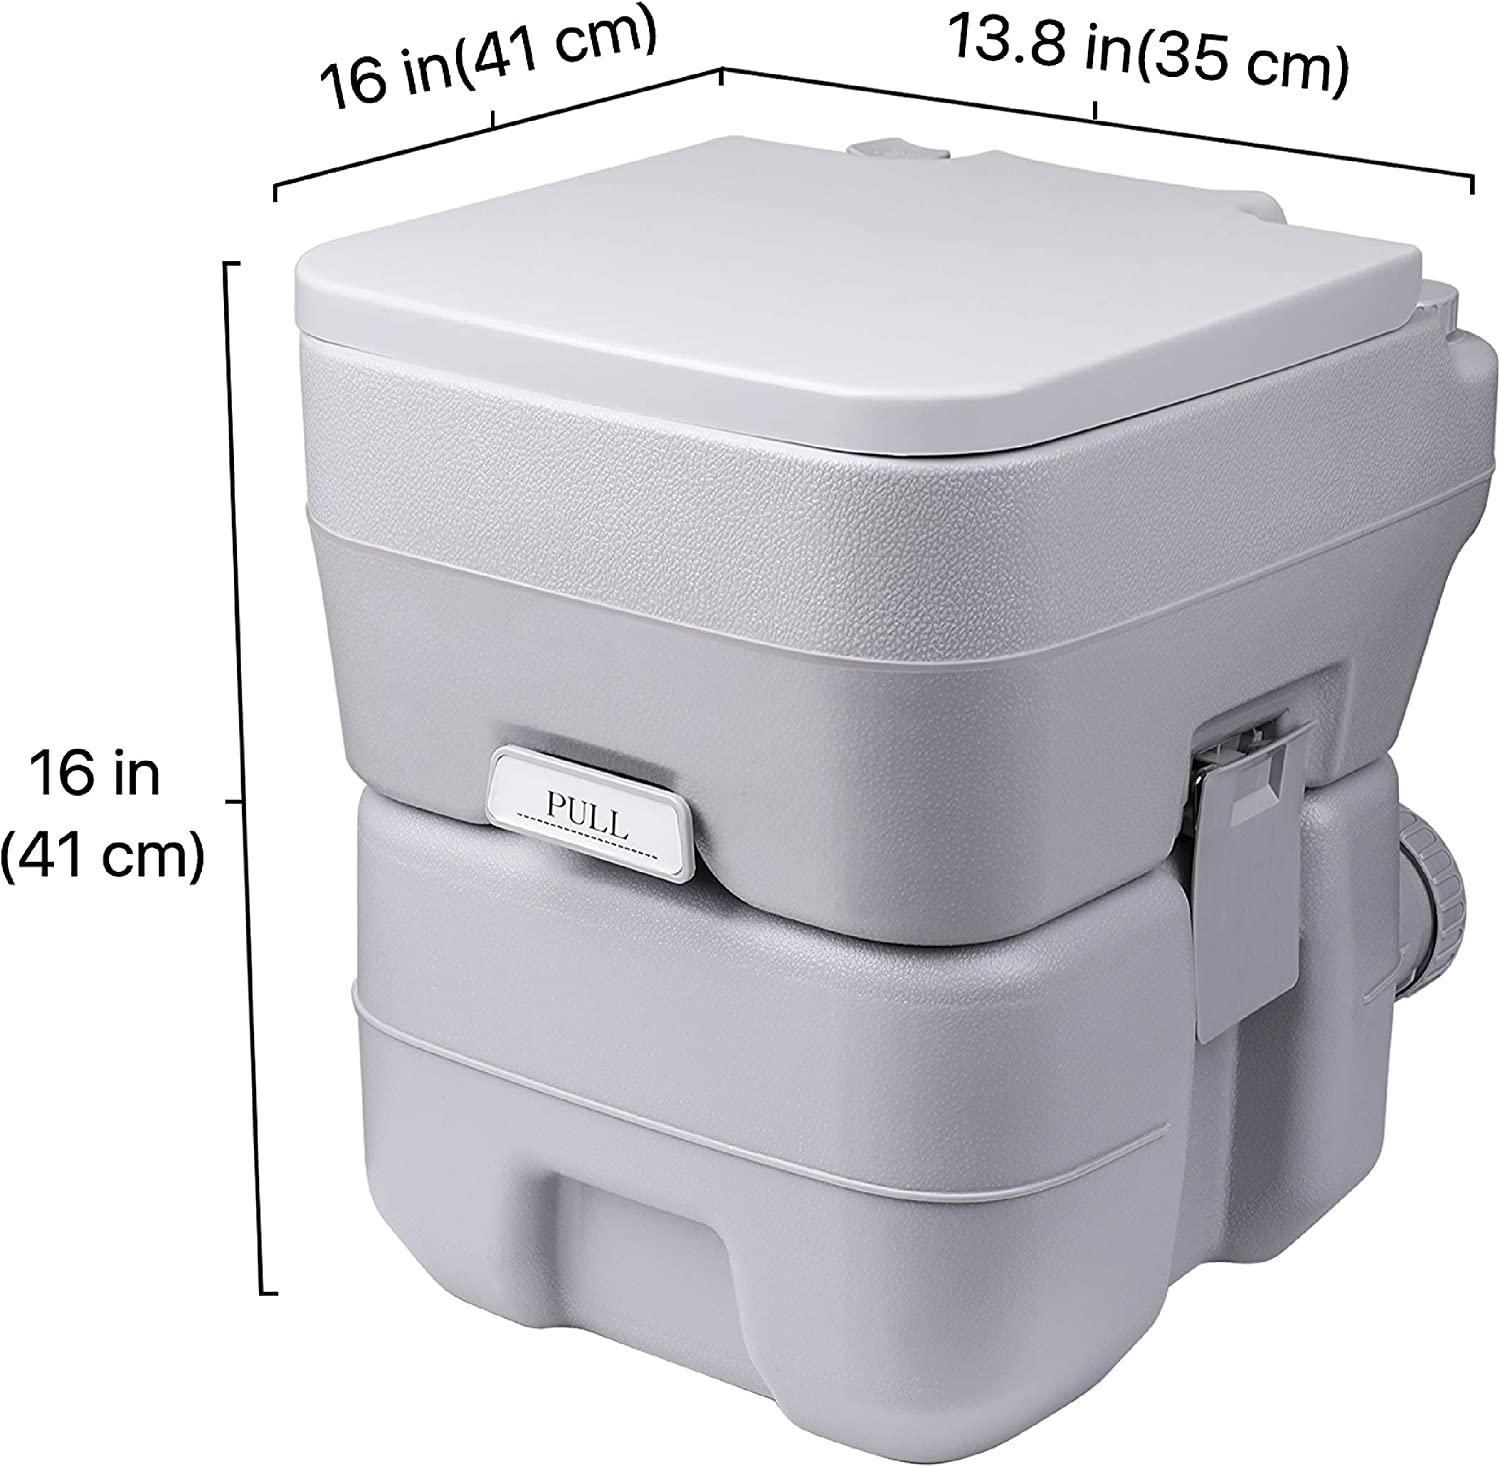 Travel Mobile Toilet Potty Seat w//Large 5.3 Gal Water Tank /& 3 Gal Waste Holding Tank Flexzion Outdoor Portable Toilet 3-Way Flush Cover and for Camping Hiking RV Travel Boat Outdoors Hiking Trip